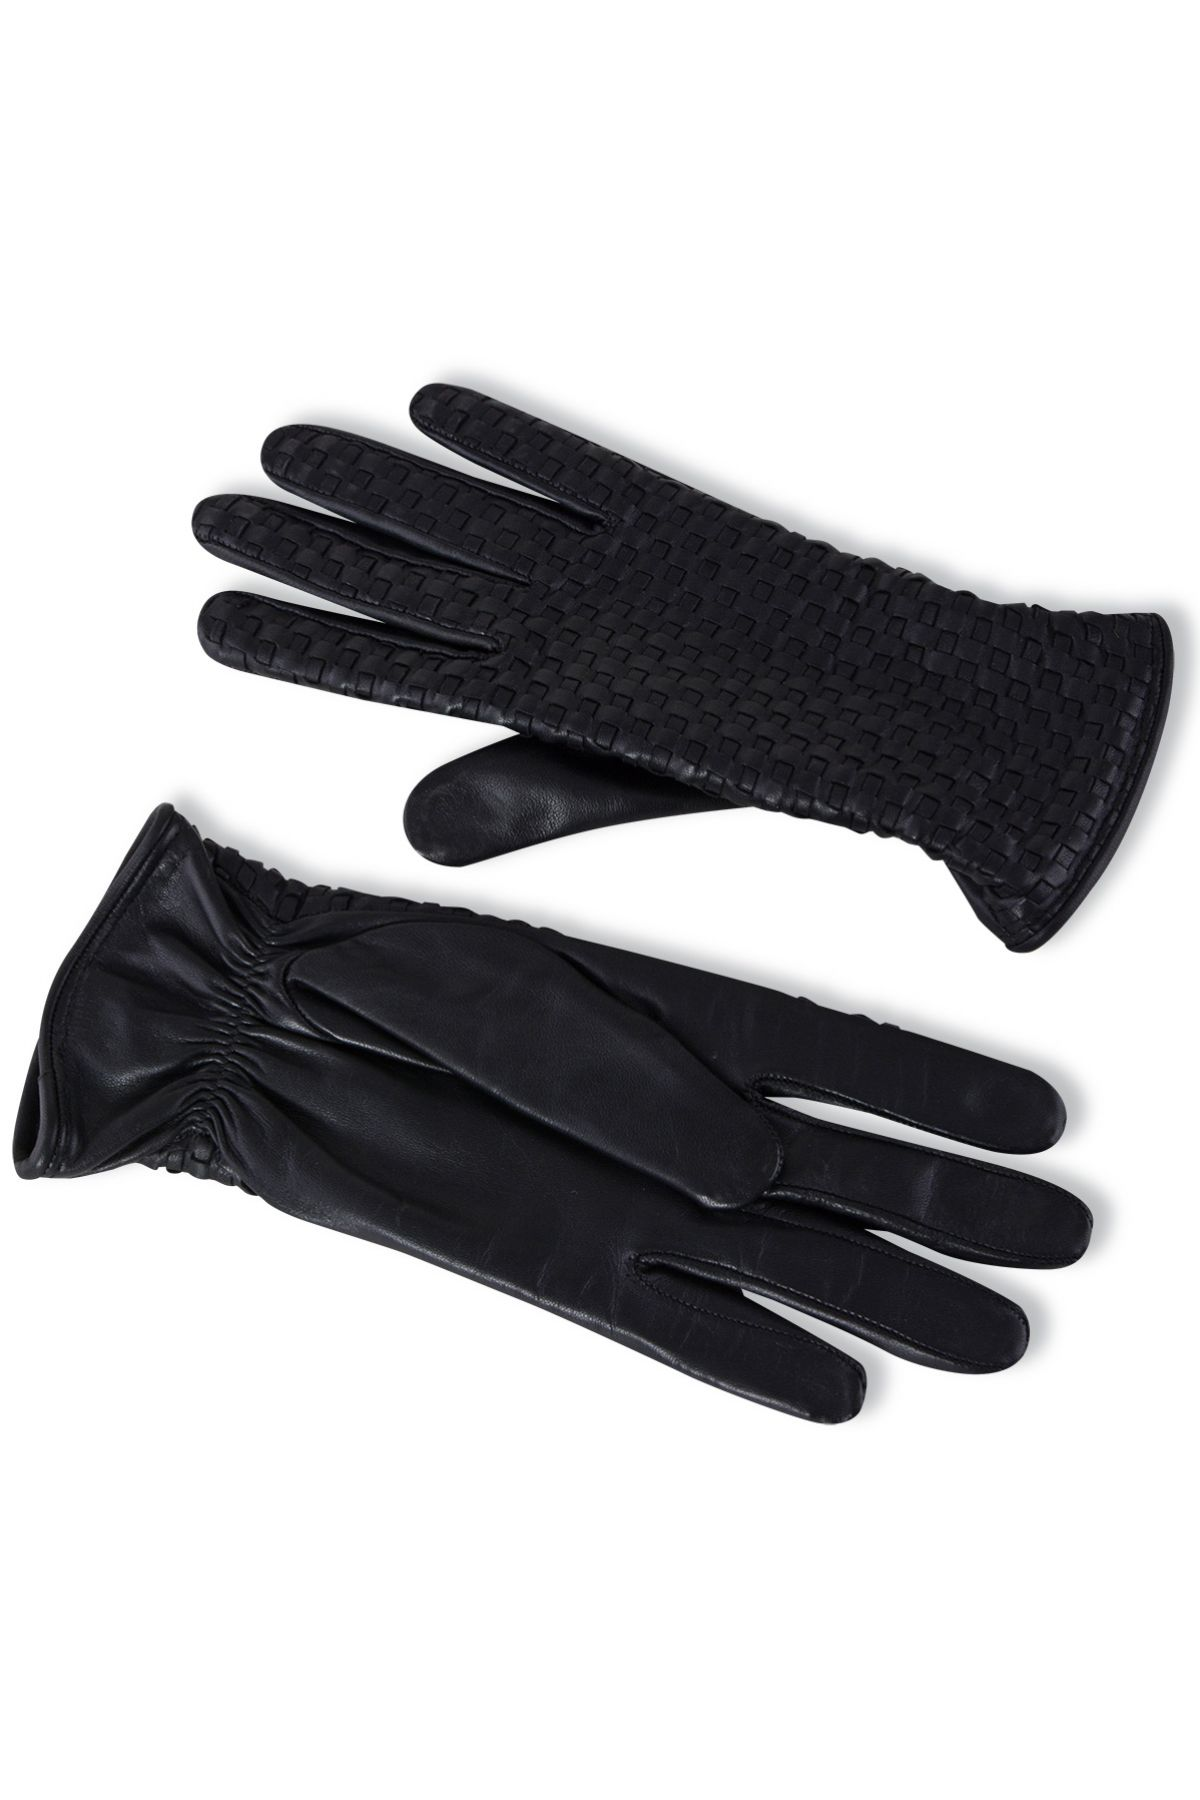 Pegia Women's Braided Leather Gloves 19EK02 Black